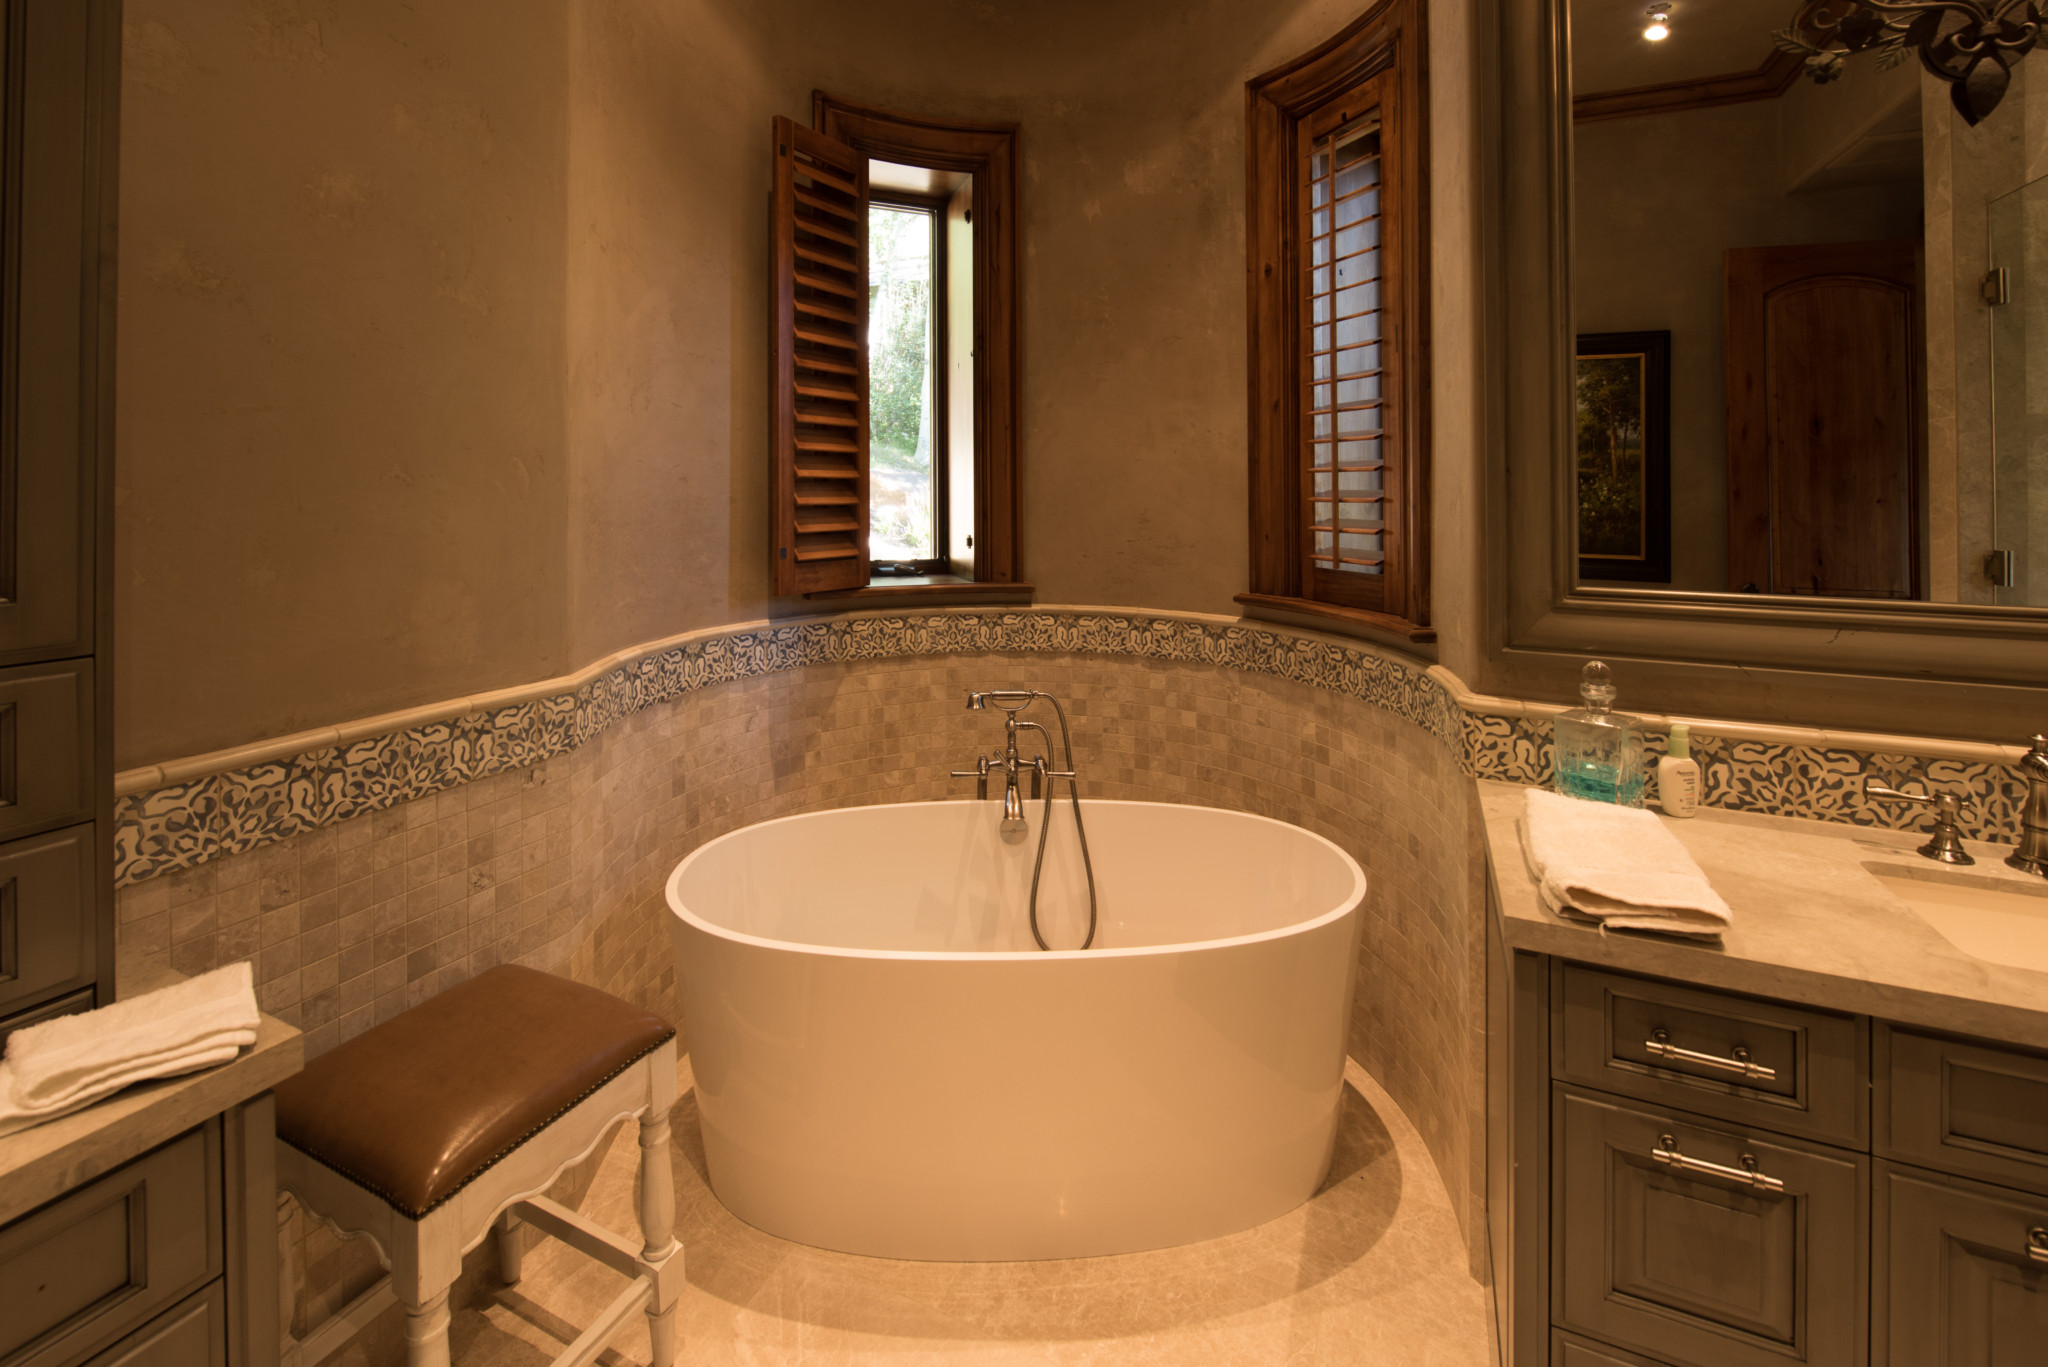 Beaver-Creek-Chateau-custom-freestanding-bathtub-with-tile-surround ...